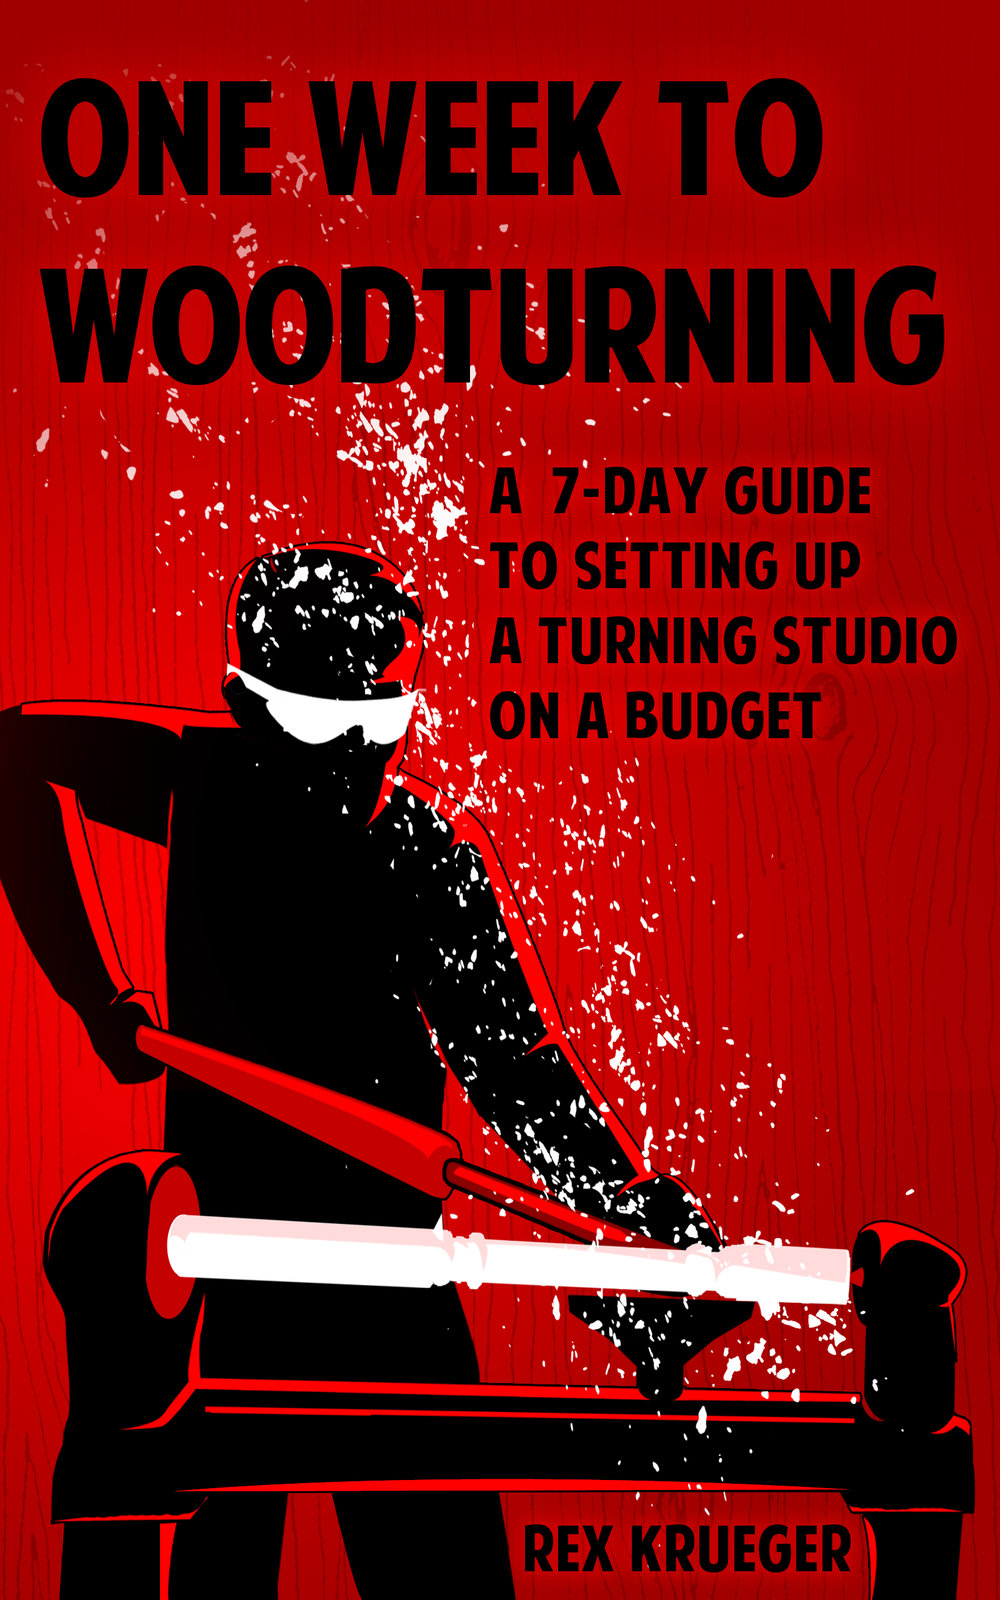 one week to wood working copy (1).jpg